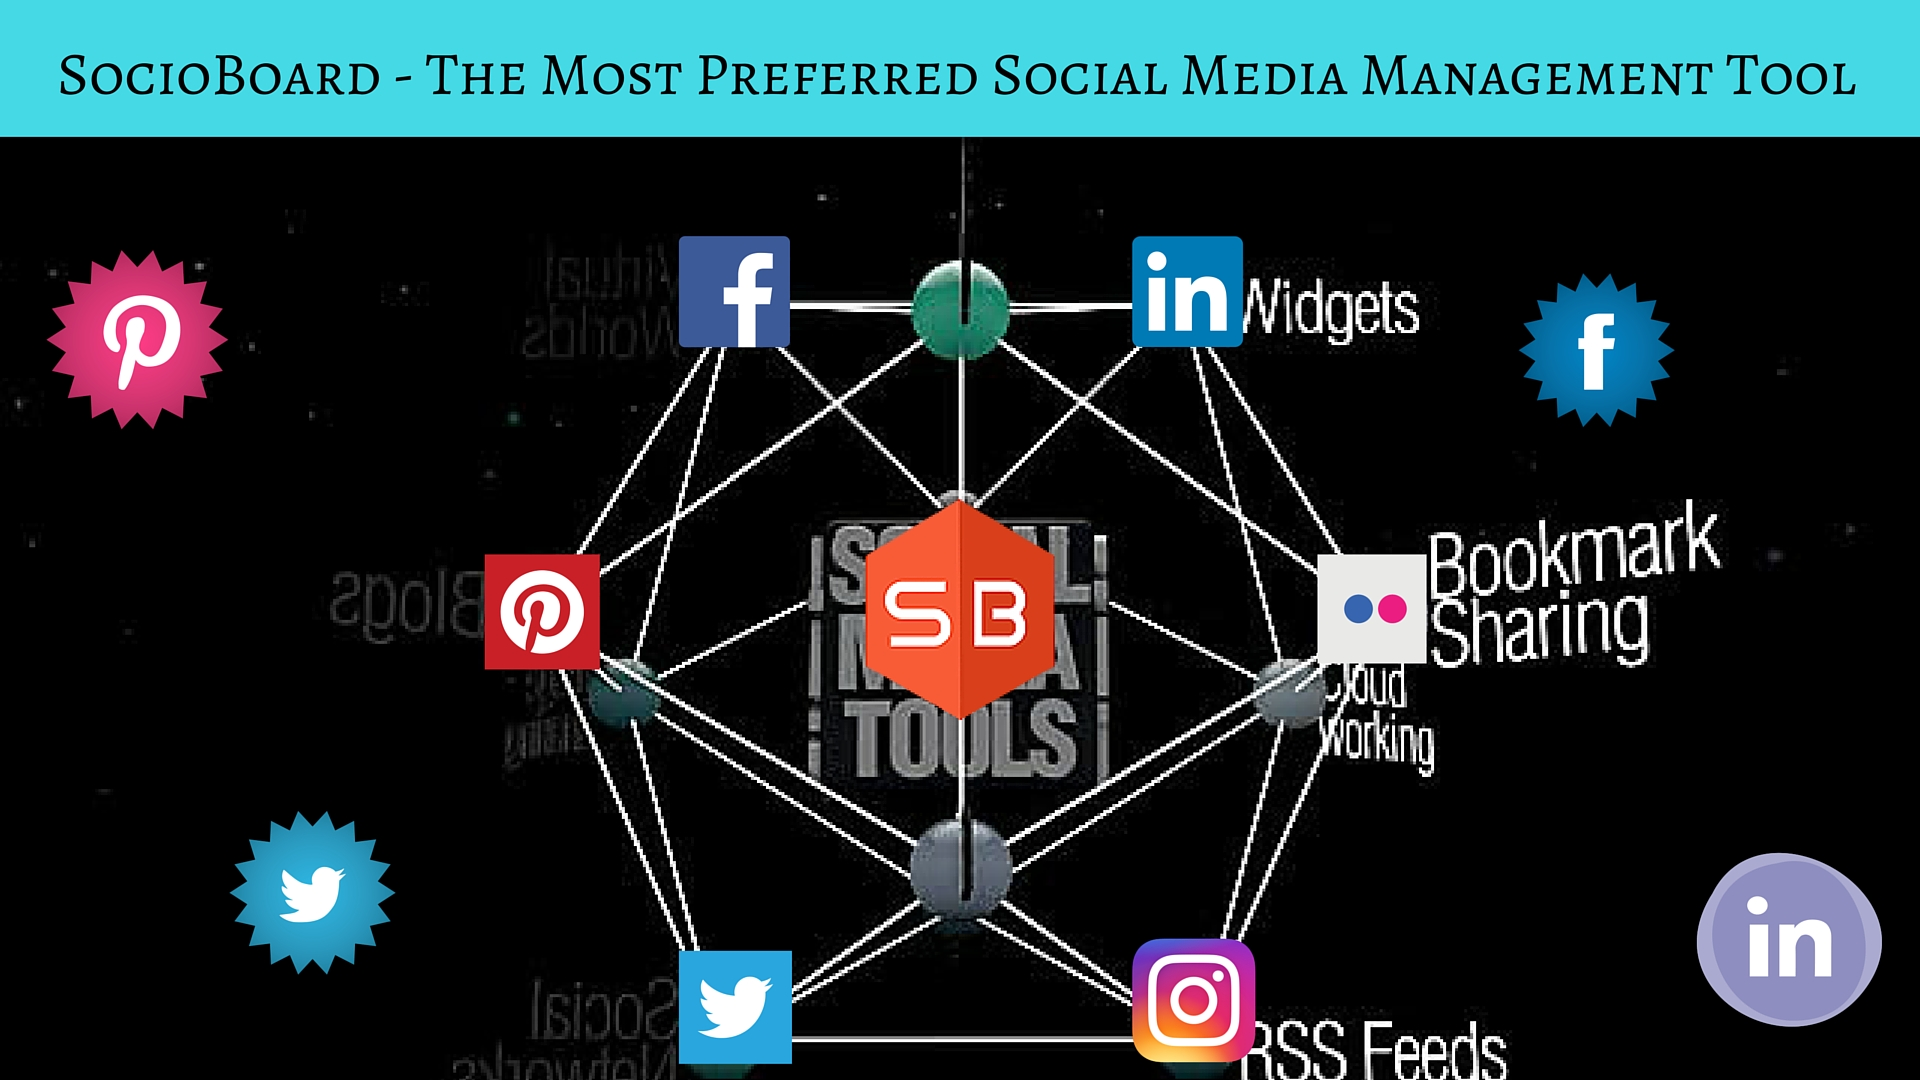 SocioBoard – The Most Preferred Social Media Management Tool for Business